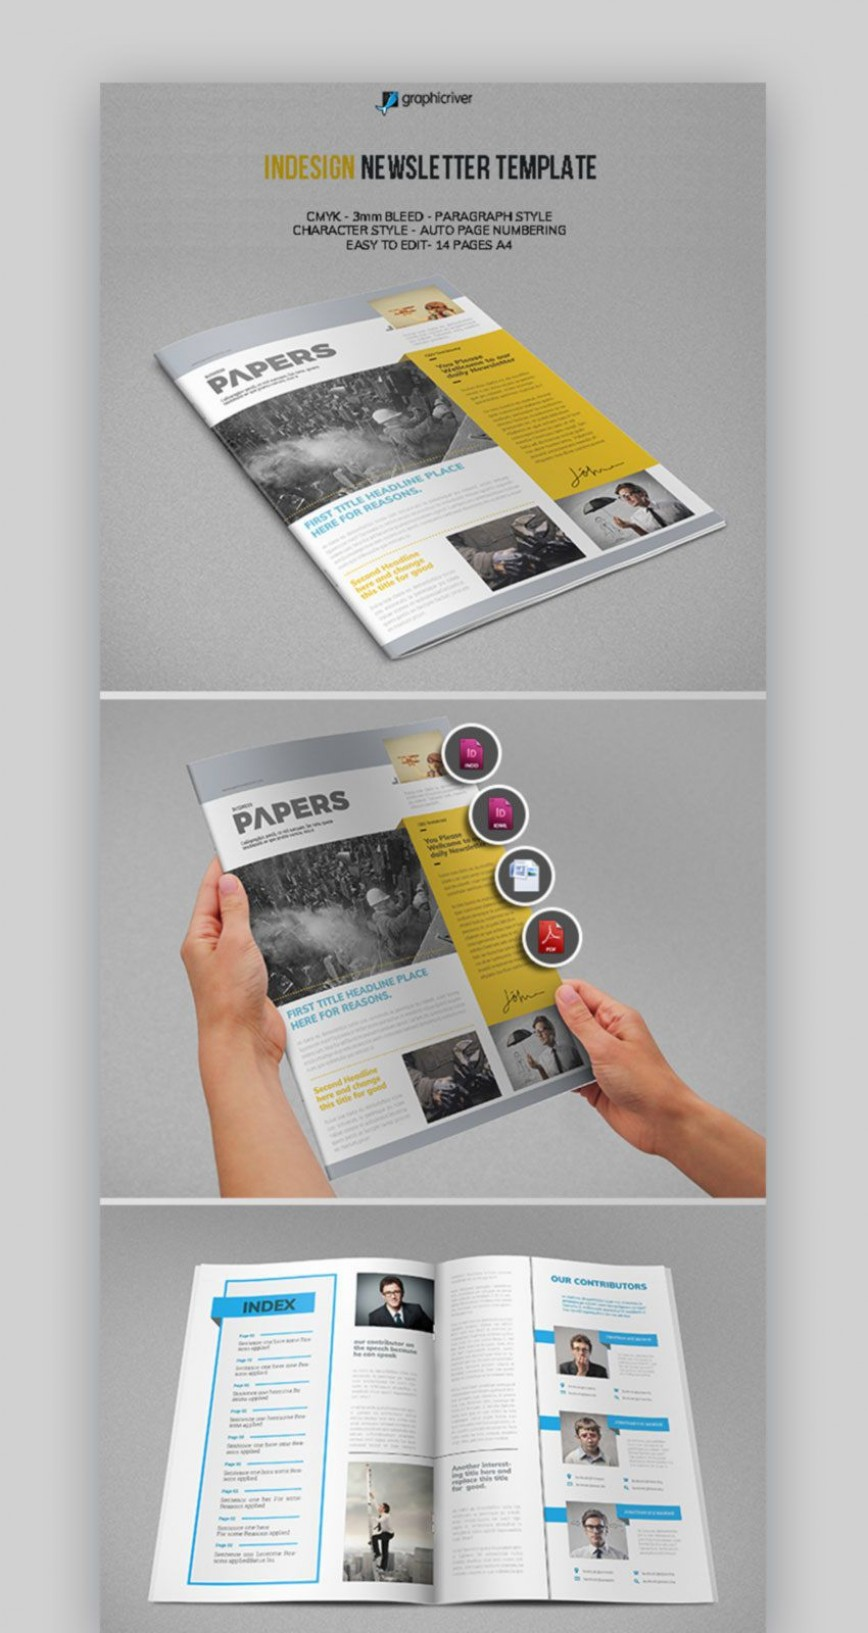 008 Stupendou Word Newsletter Template Free Download Image  M 2007 Document Design